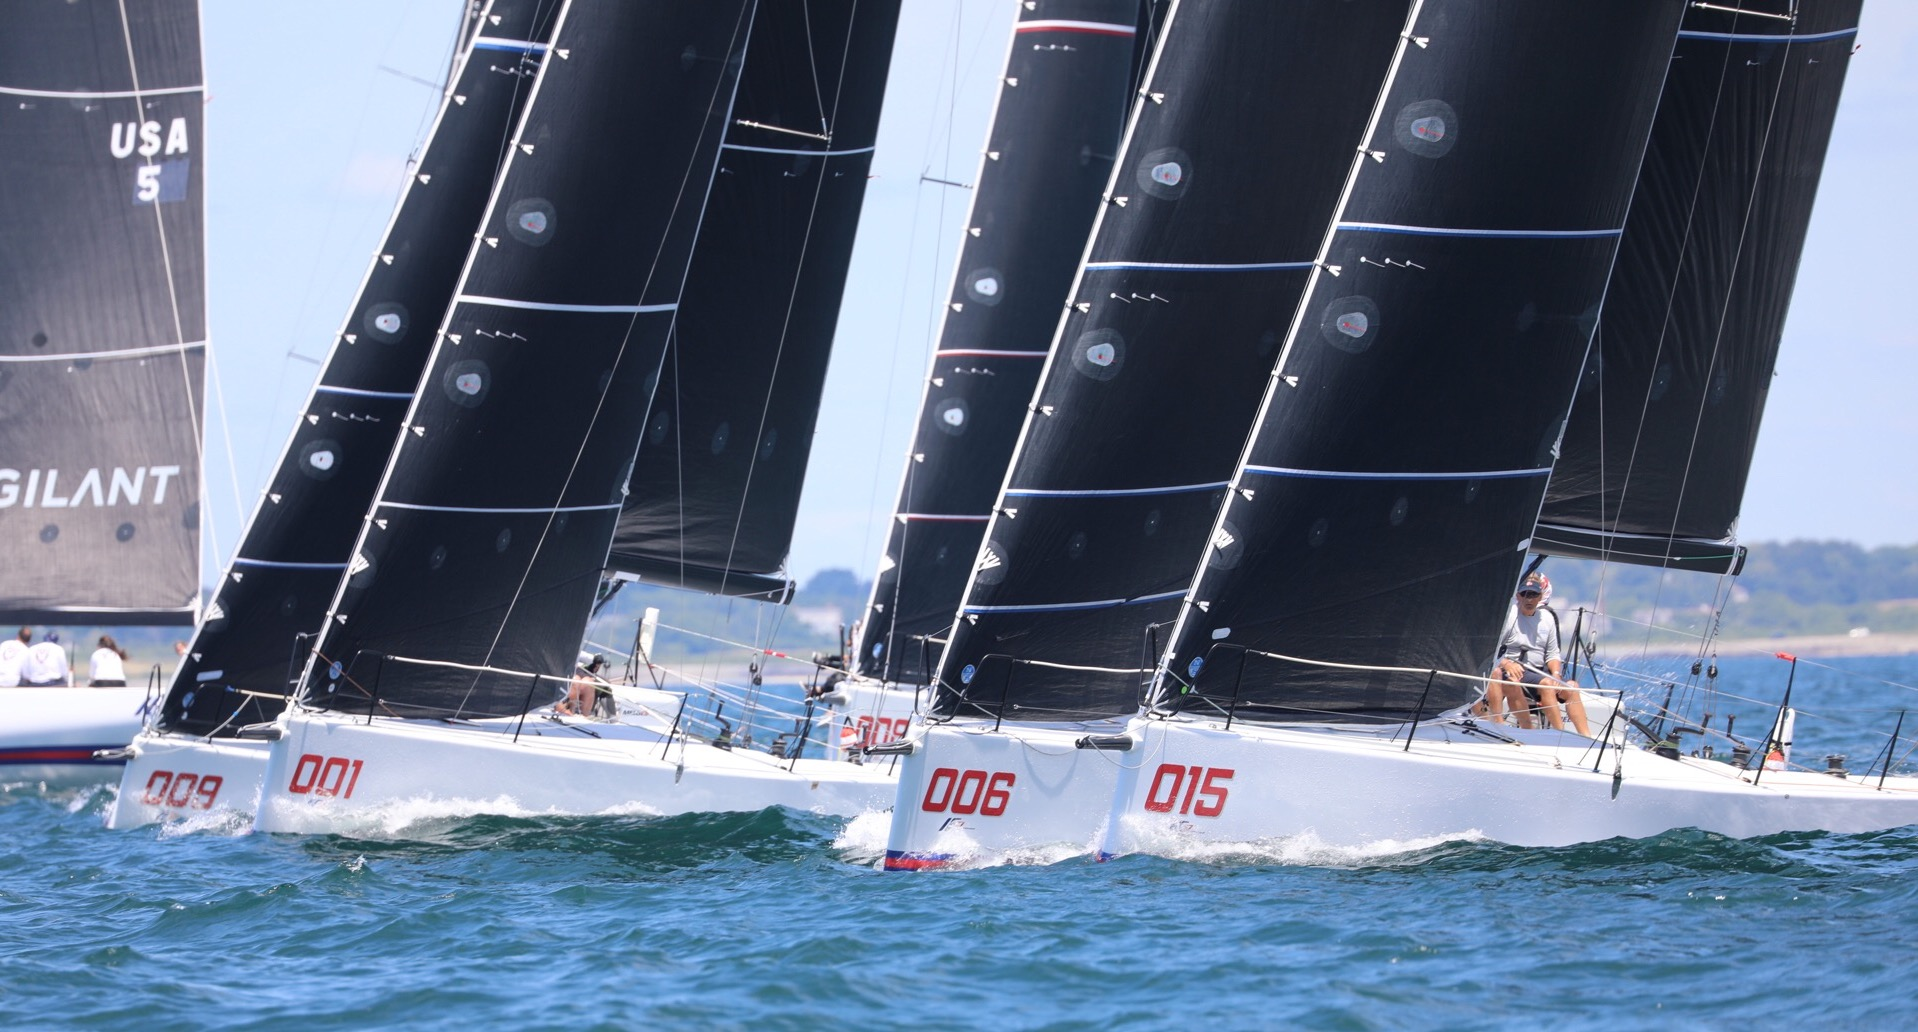 GRINS AND GLAMOR FOR MELGES IC37 CLASS AT THE NEW YORK YACHT